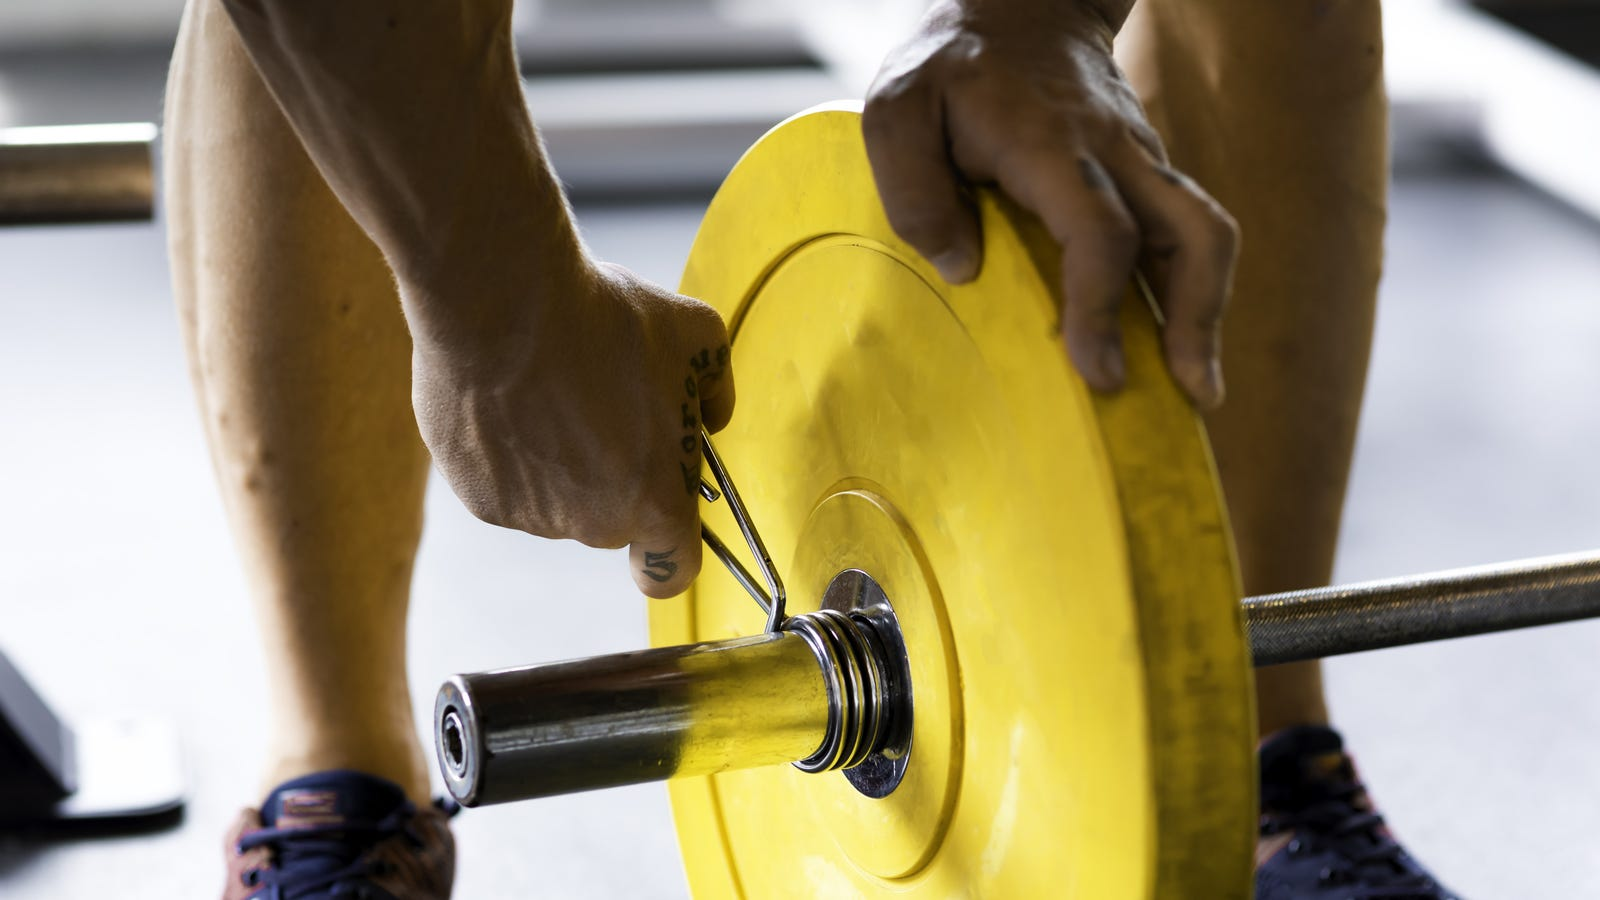 How to Add Up the Weights When You're Lifting With a Barbell